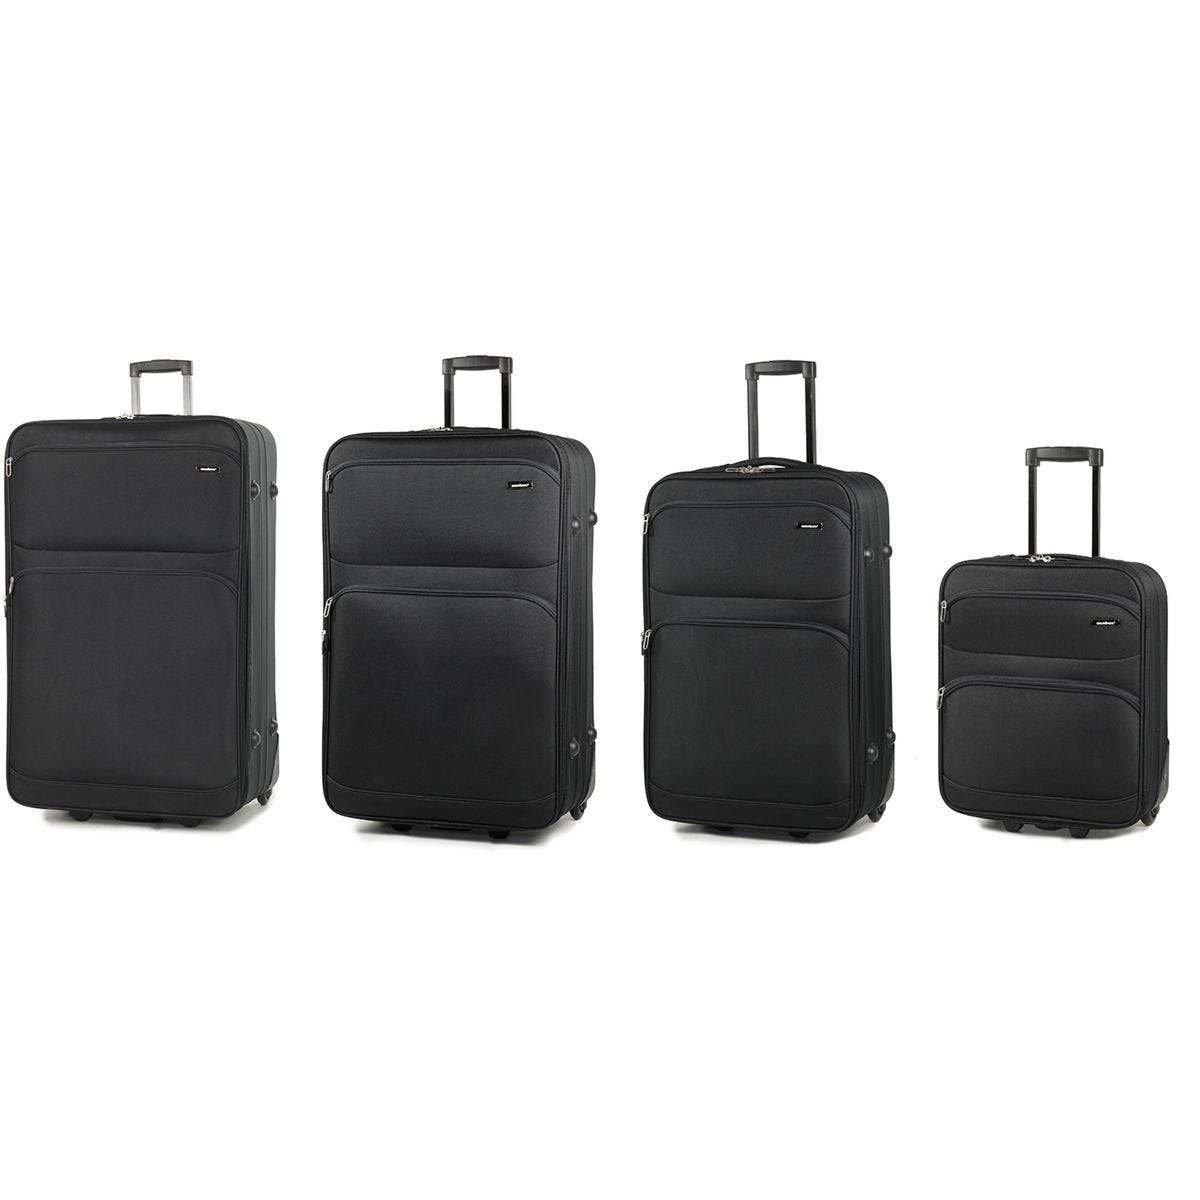 Members Topaz Set of 4 Lightweight Expandable Two Wheel Luggage - Black